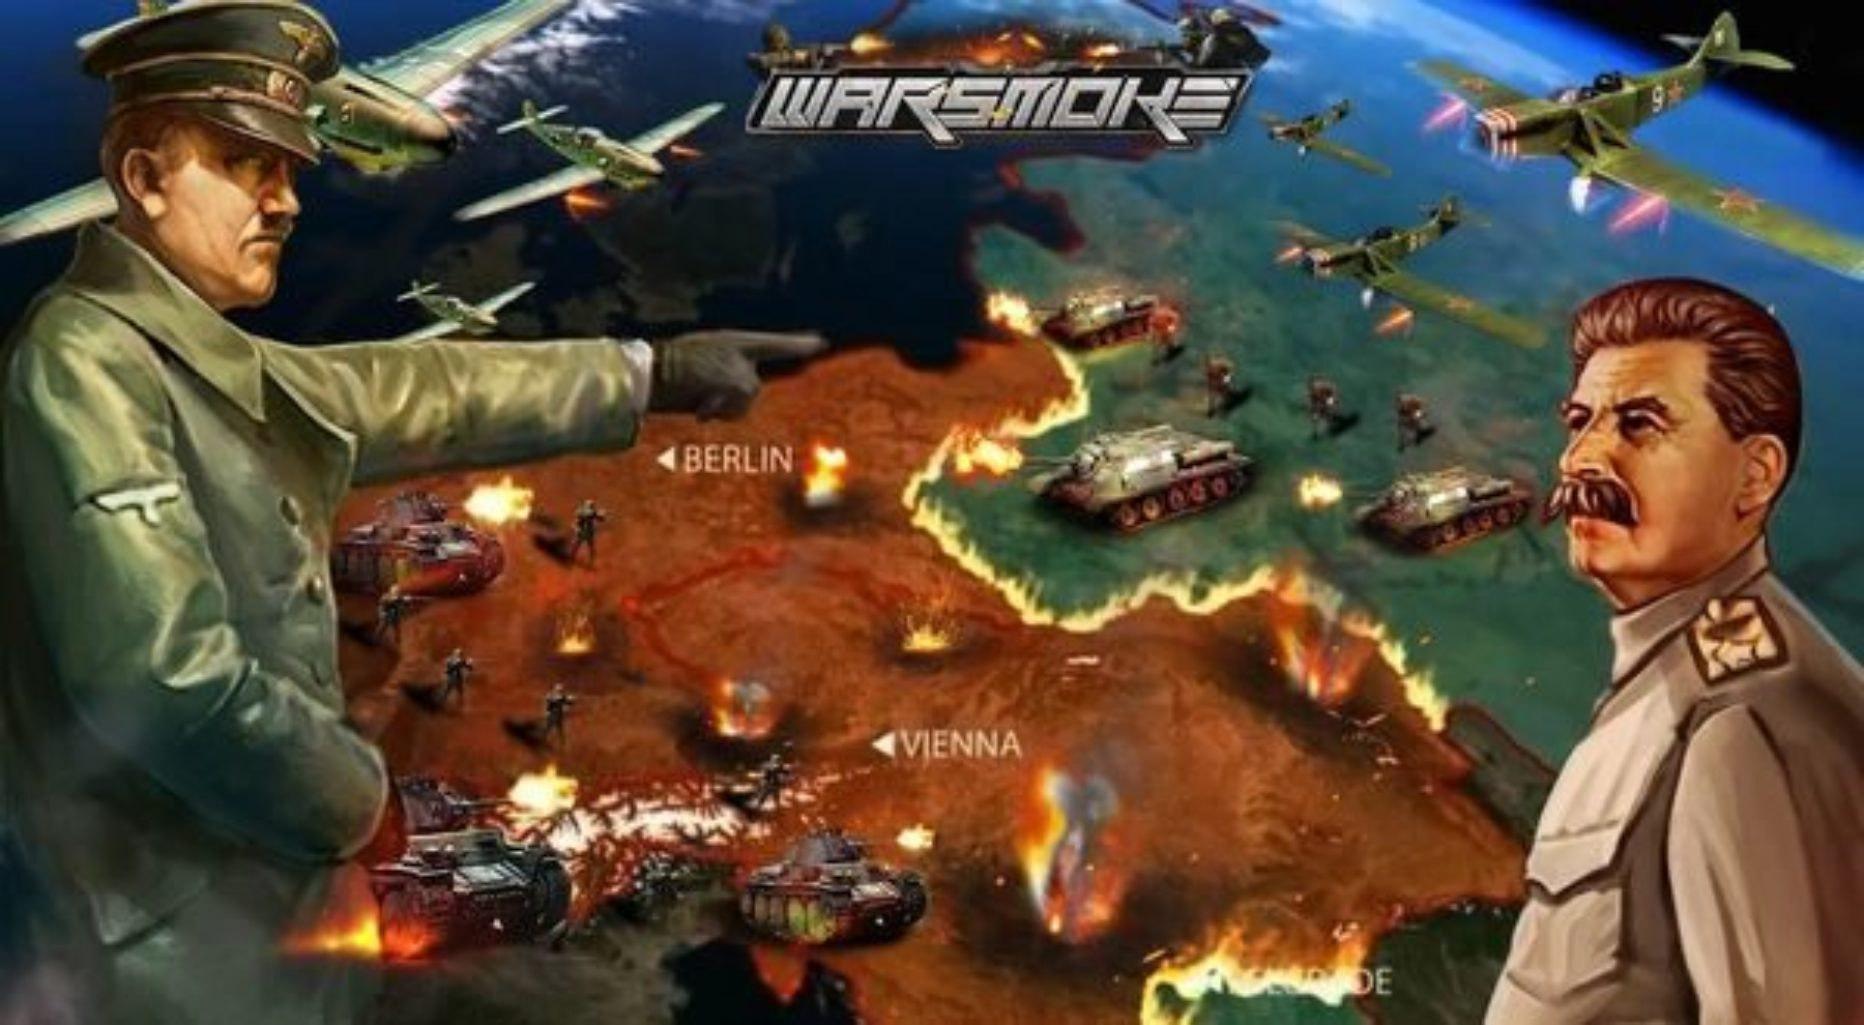 Warsmoke – Epic MMO SLG – Post World War Game that Tests Your Tactical Knowhow